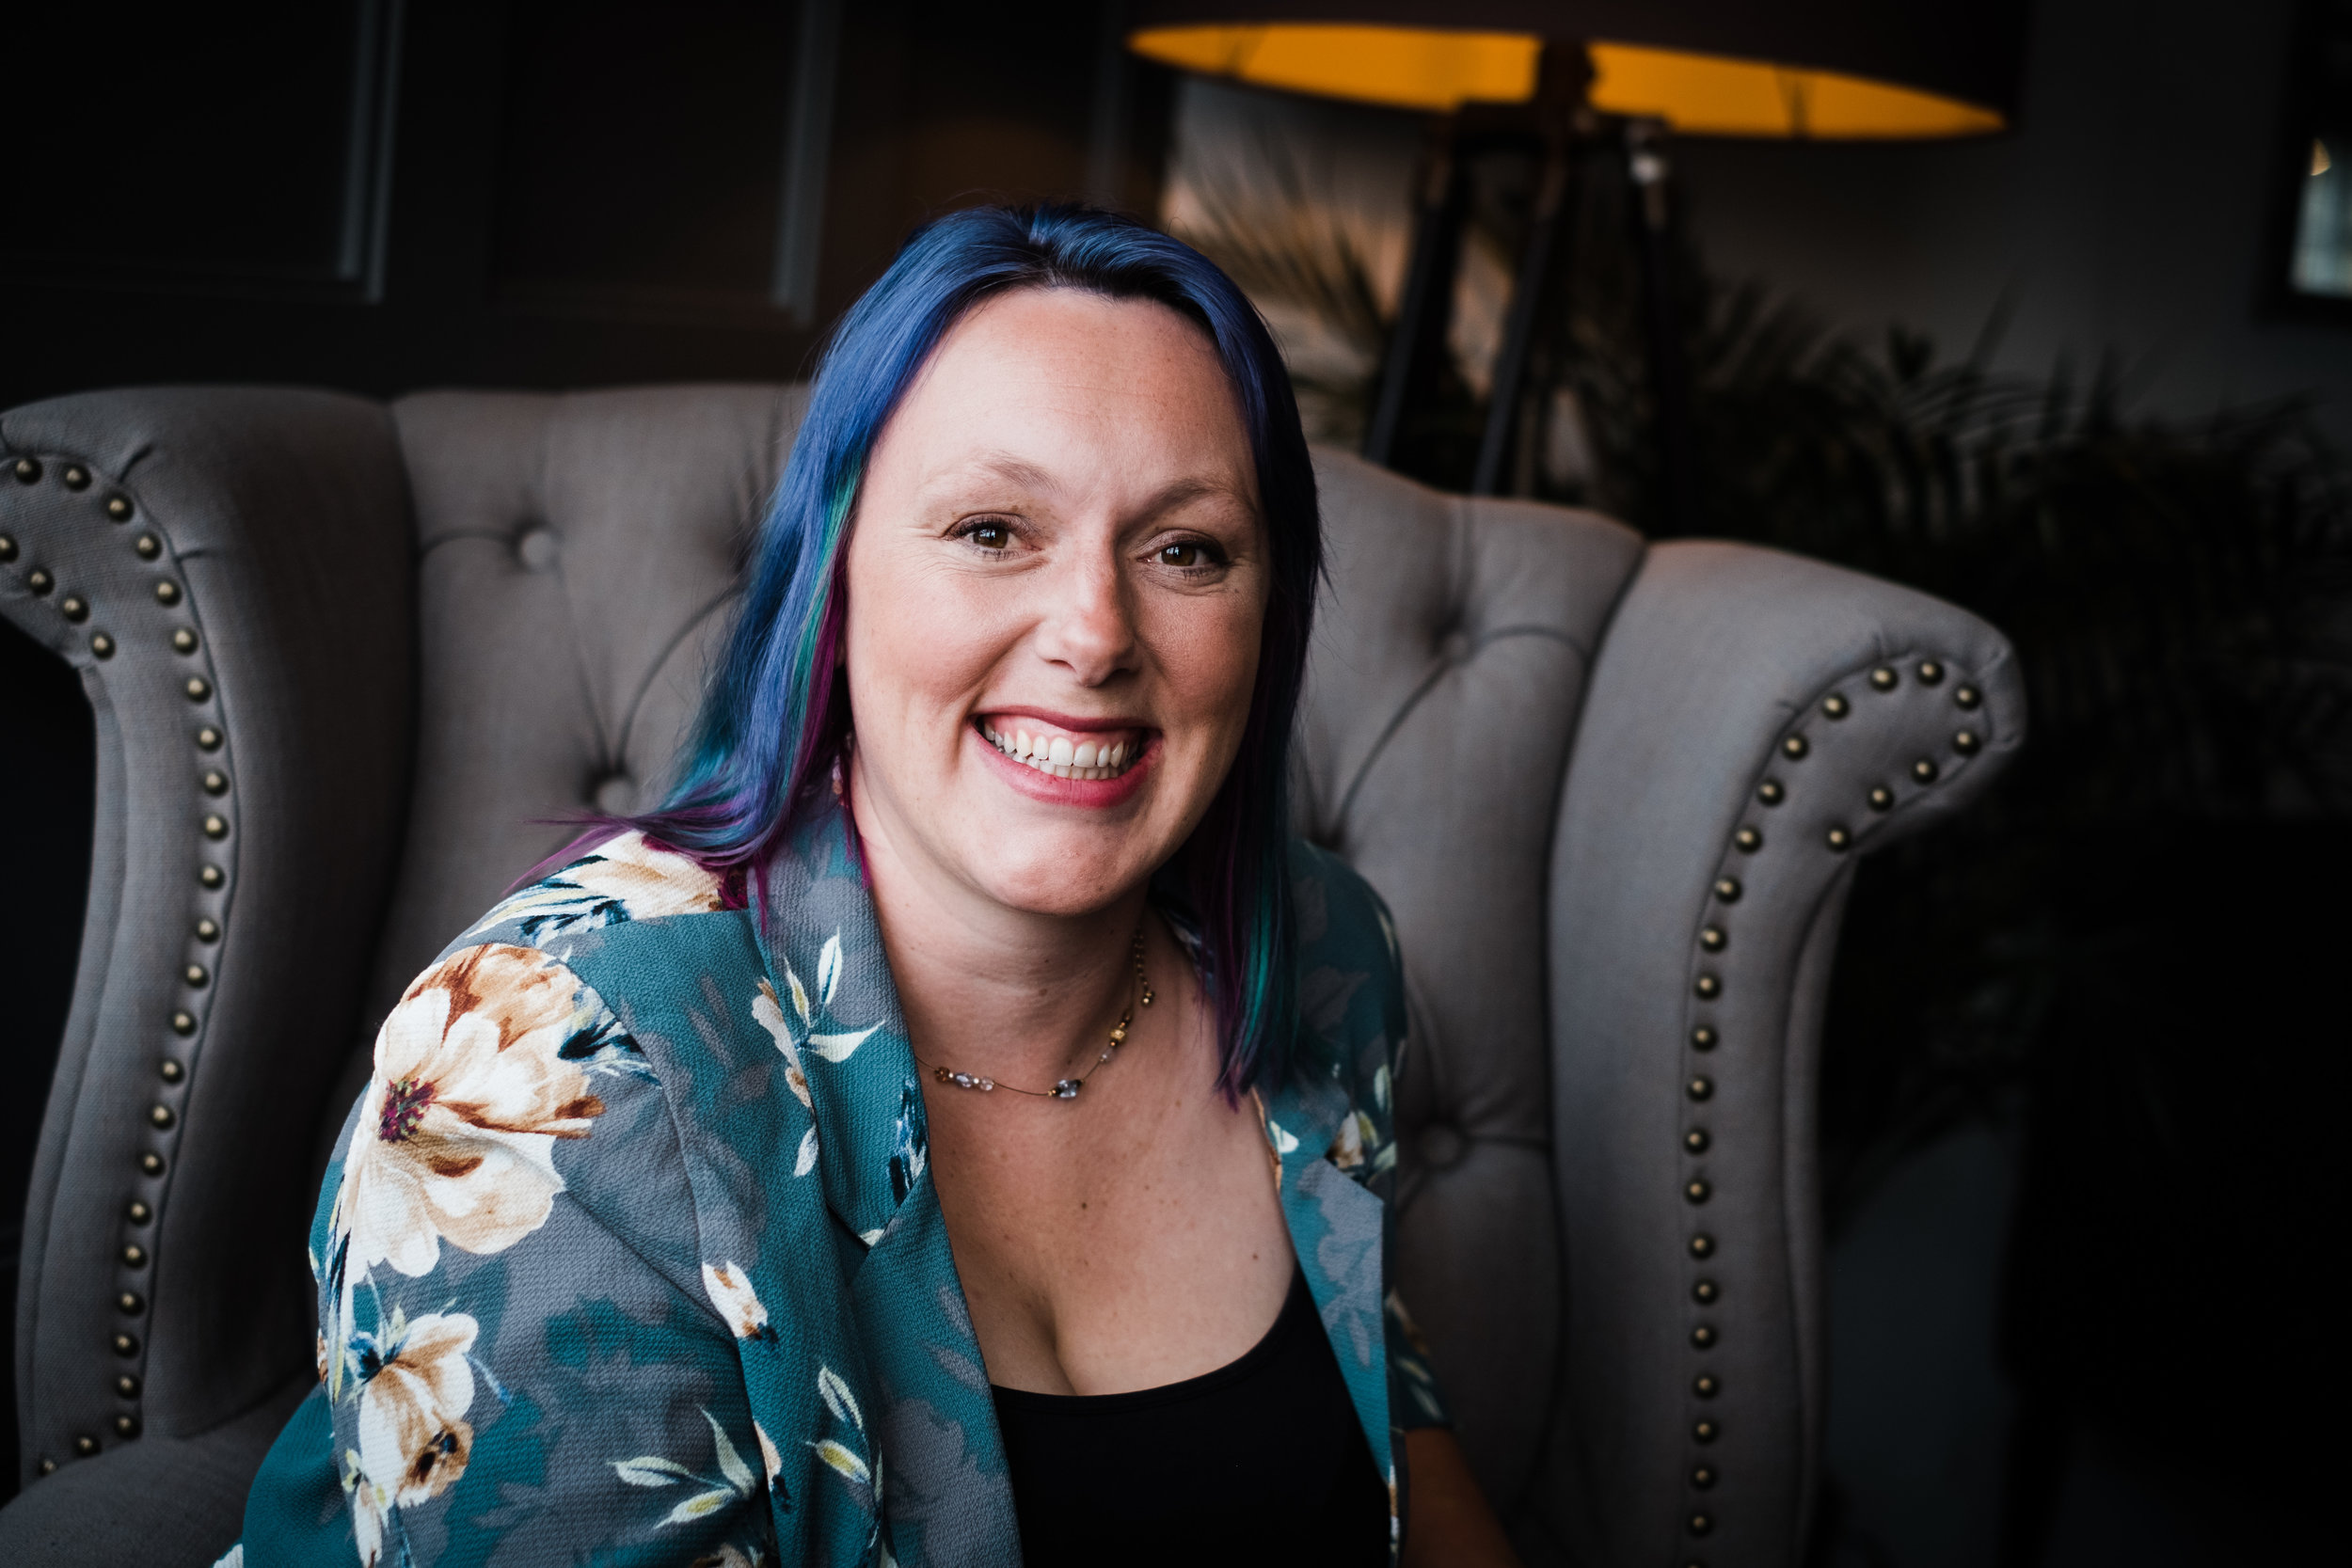 Hazel Parsons - After beginning her own journey as a self employed business woman in 2013, Hazel Parsons is now not only the award winning owner of Hazel Parsons Consultancy but also the Founder of The Wedding Venue Academy & the WedMeetupUK networking events.